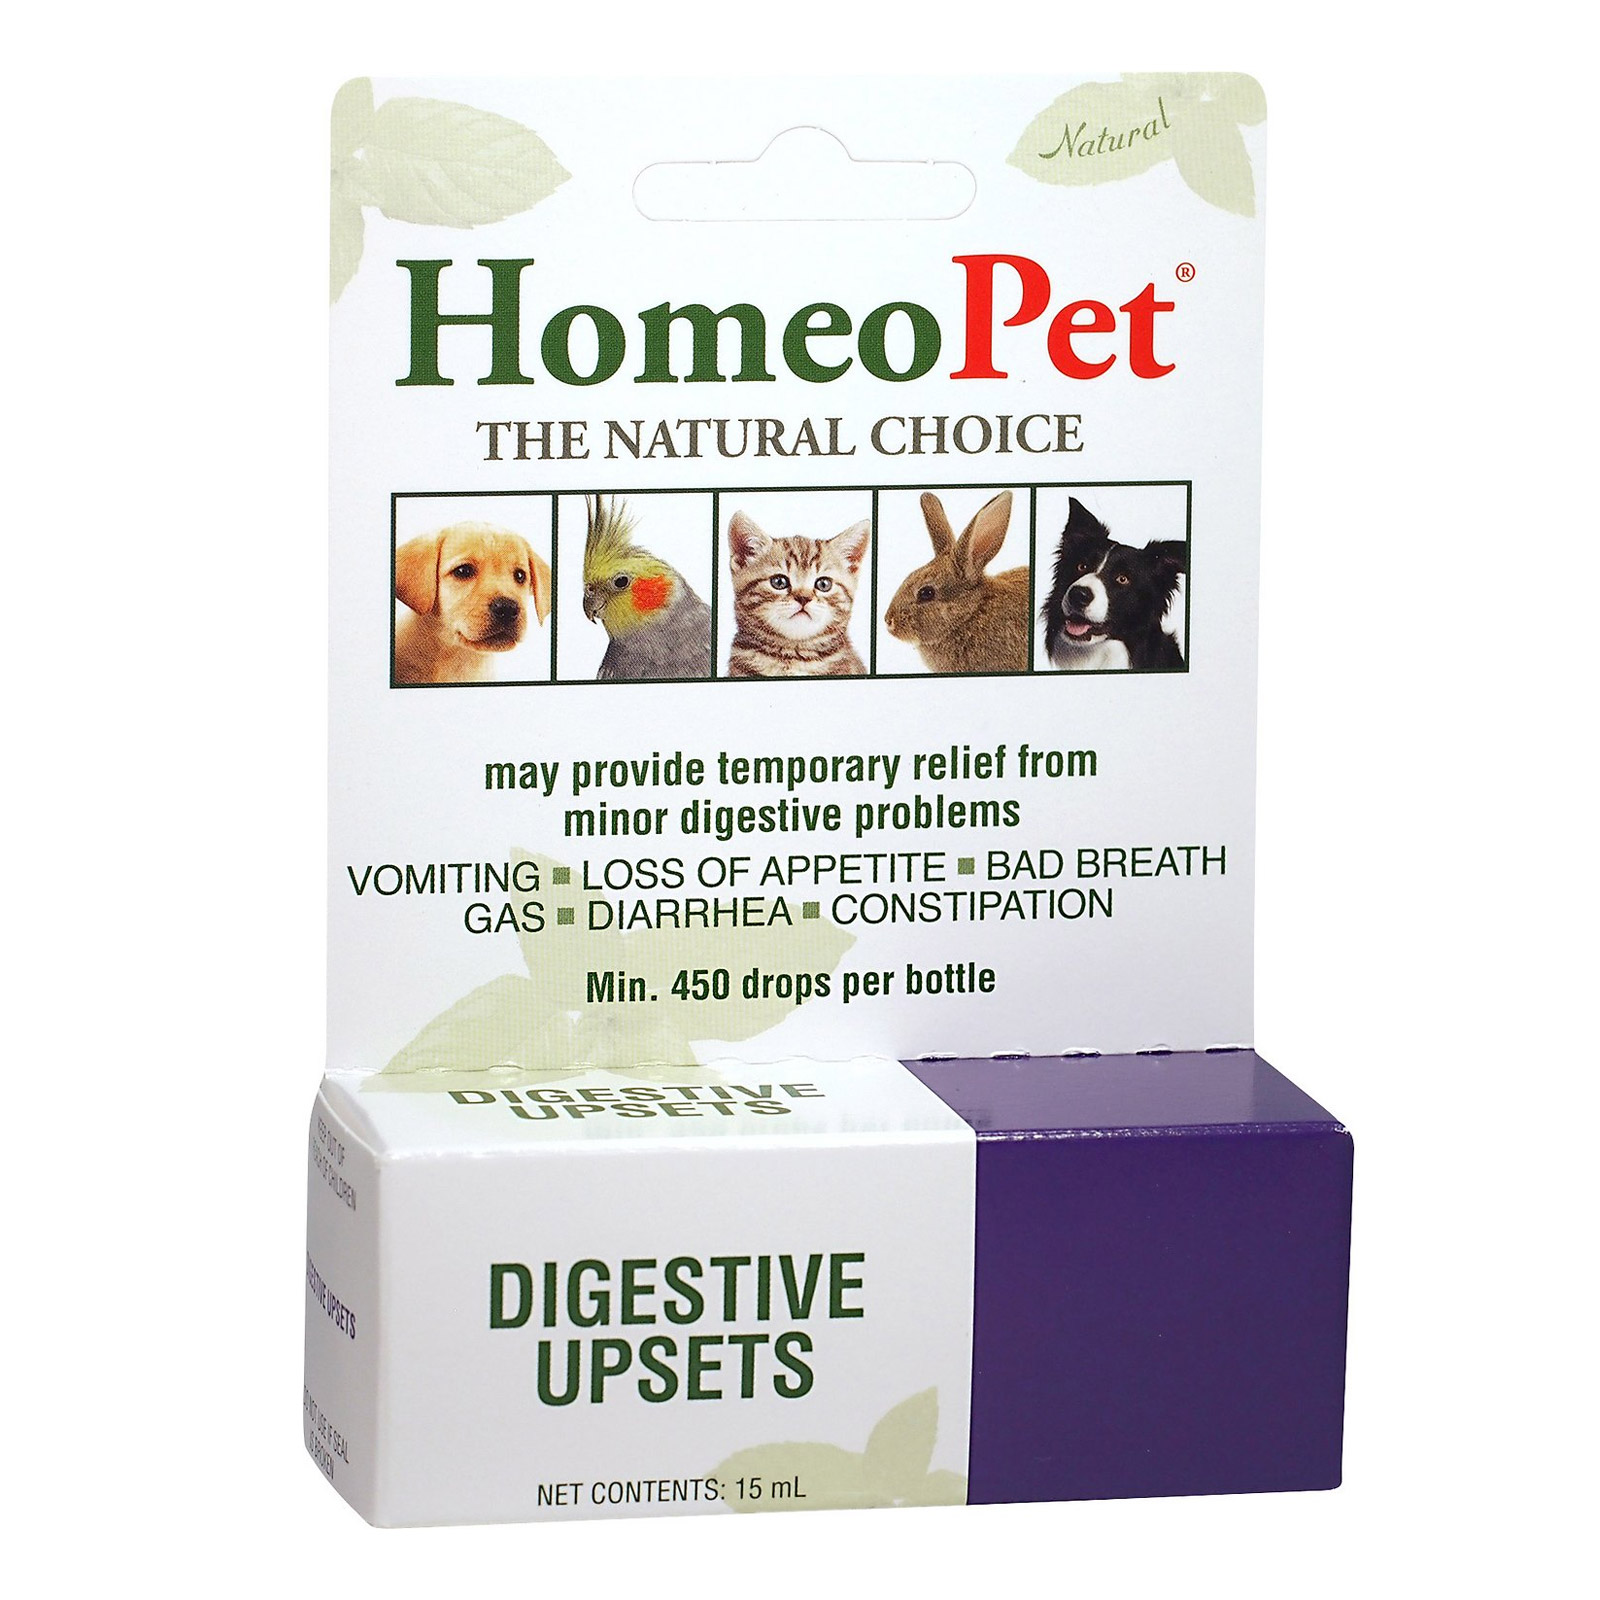 Digestive-Upsets-For-DogsCats-214589